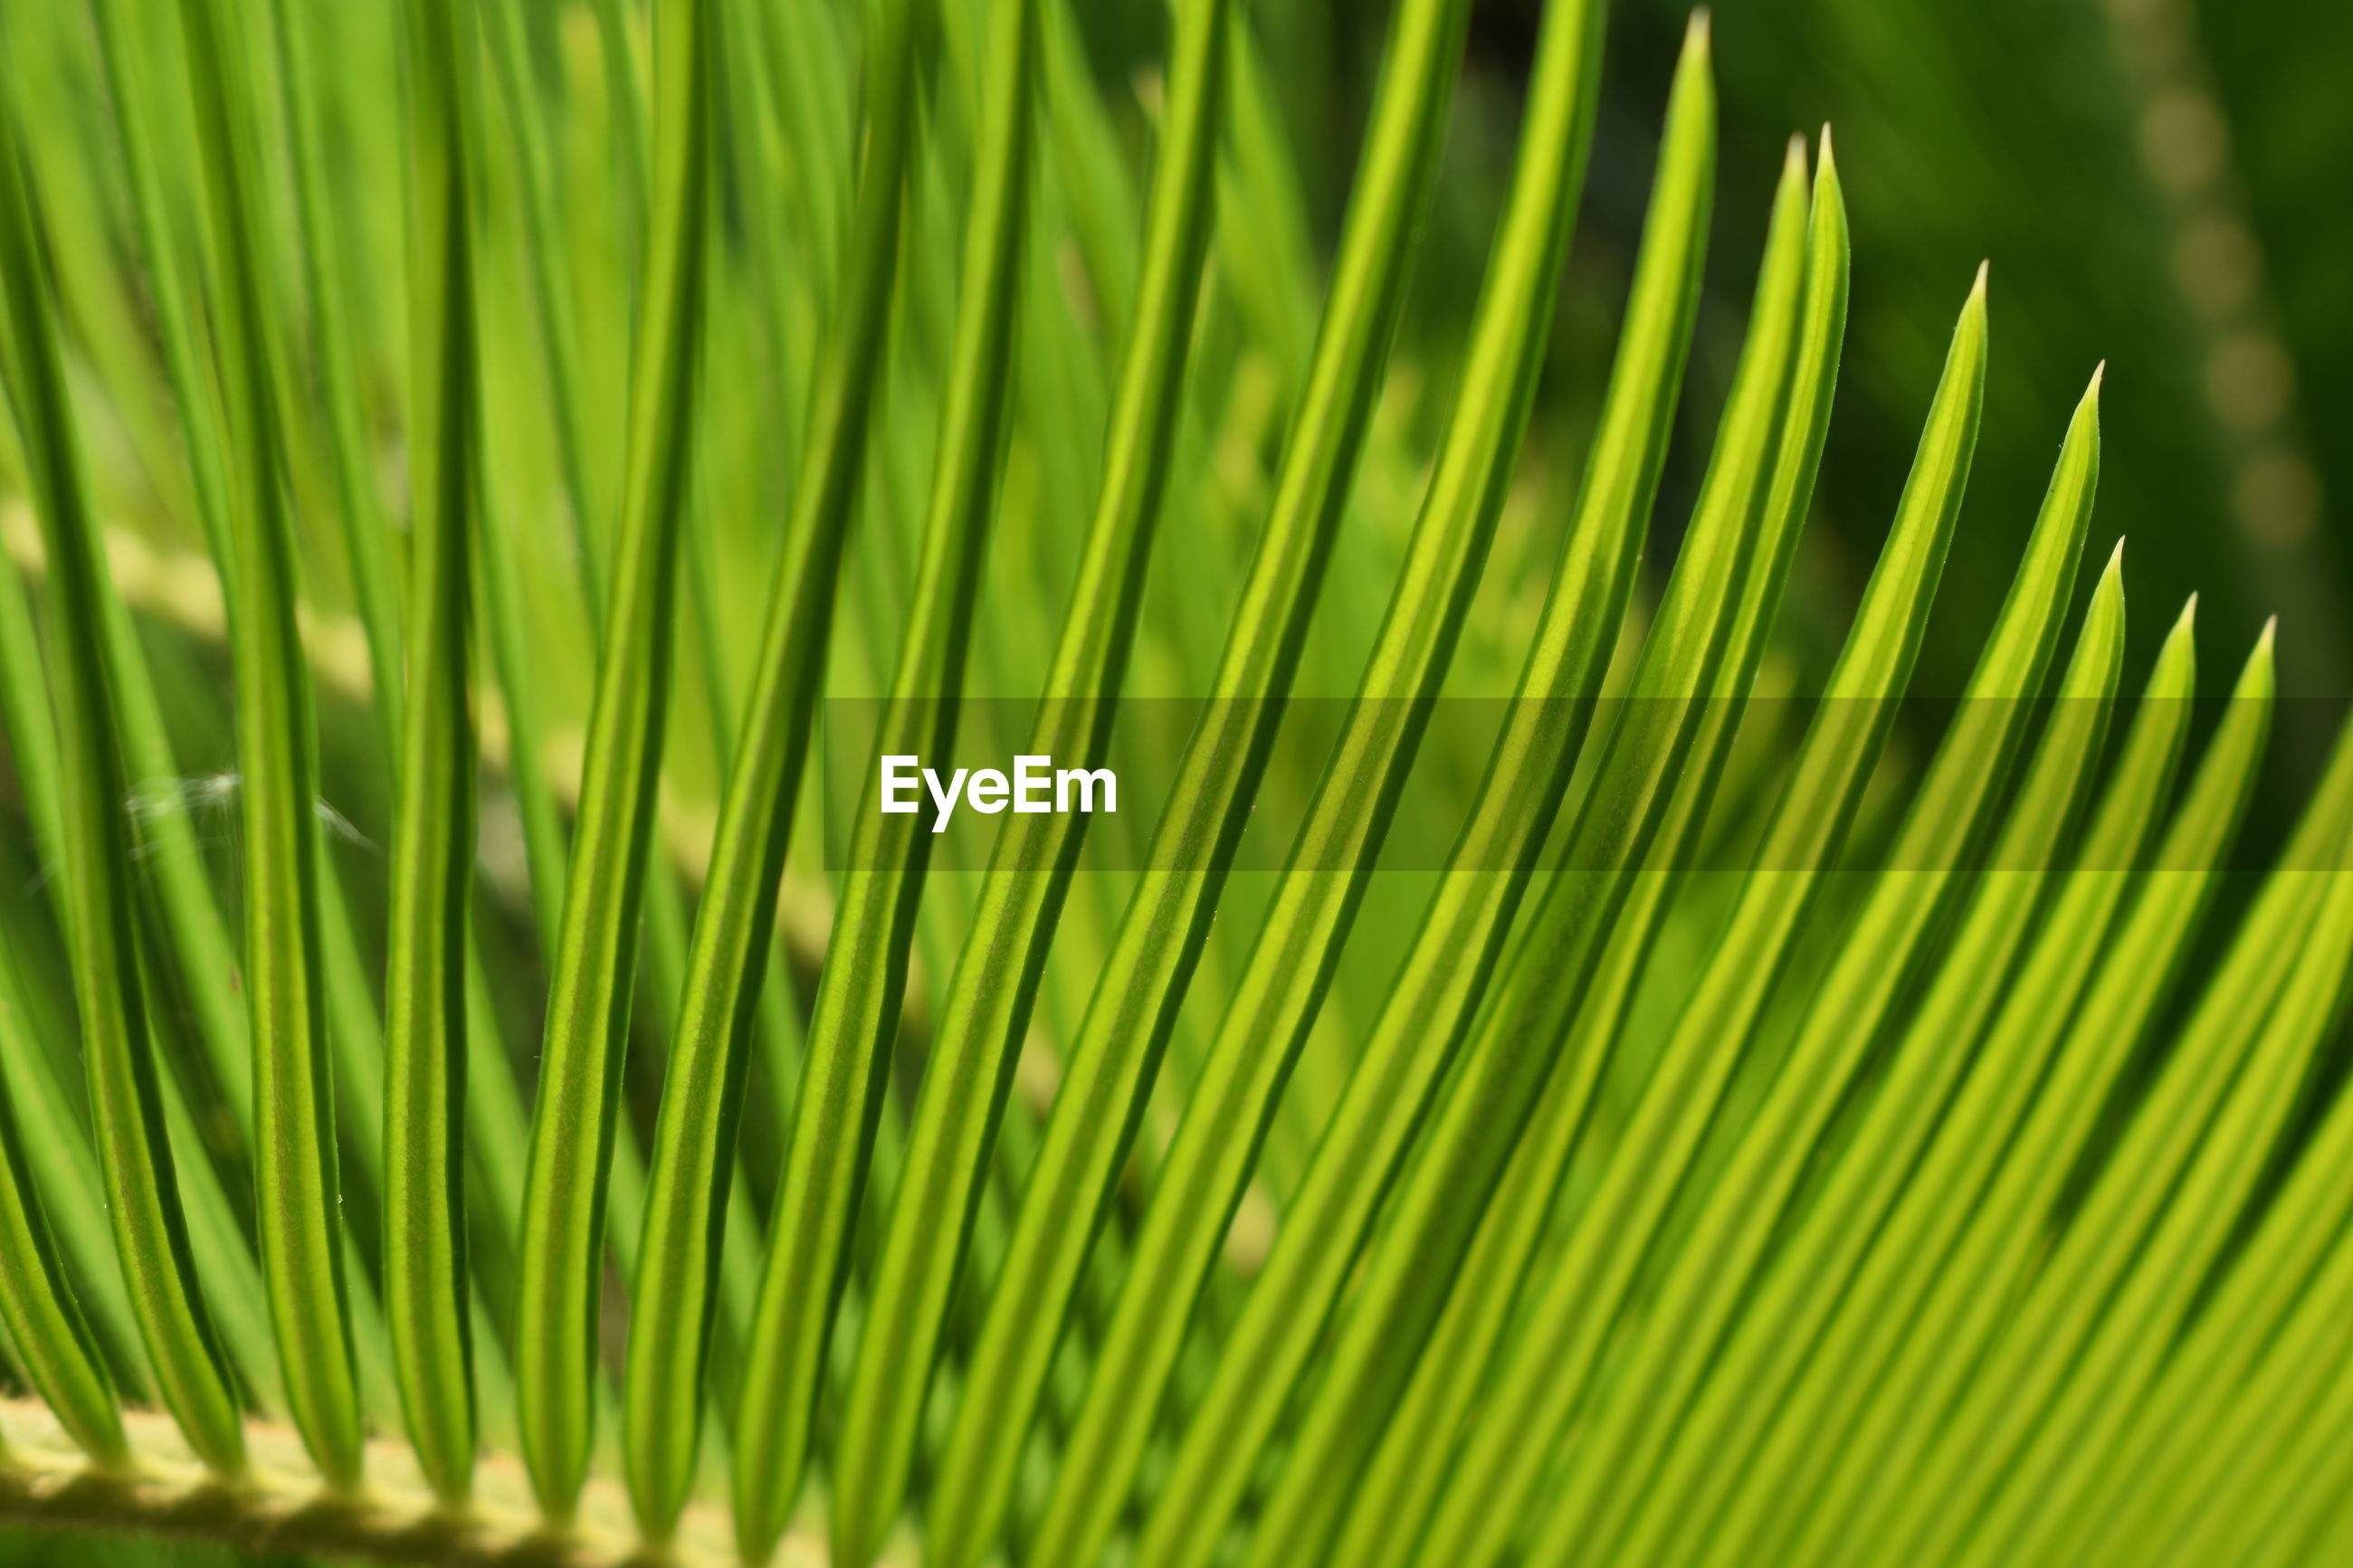 CLOSE-UP OF PALM TREE LEAVES IN BACKGROUND